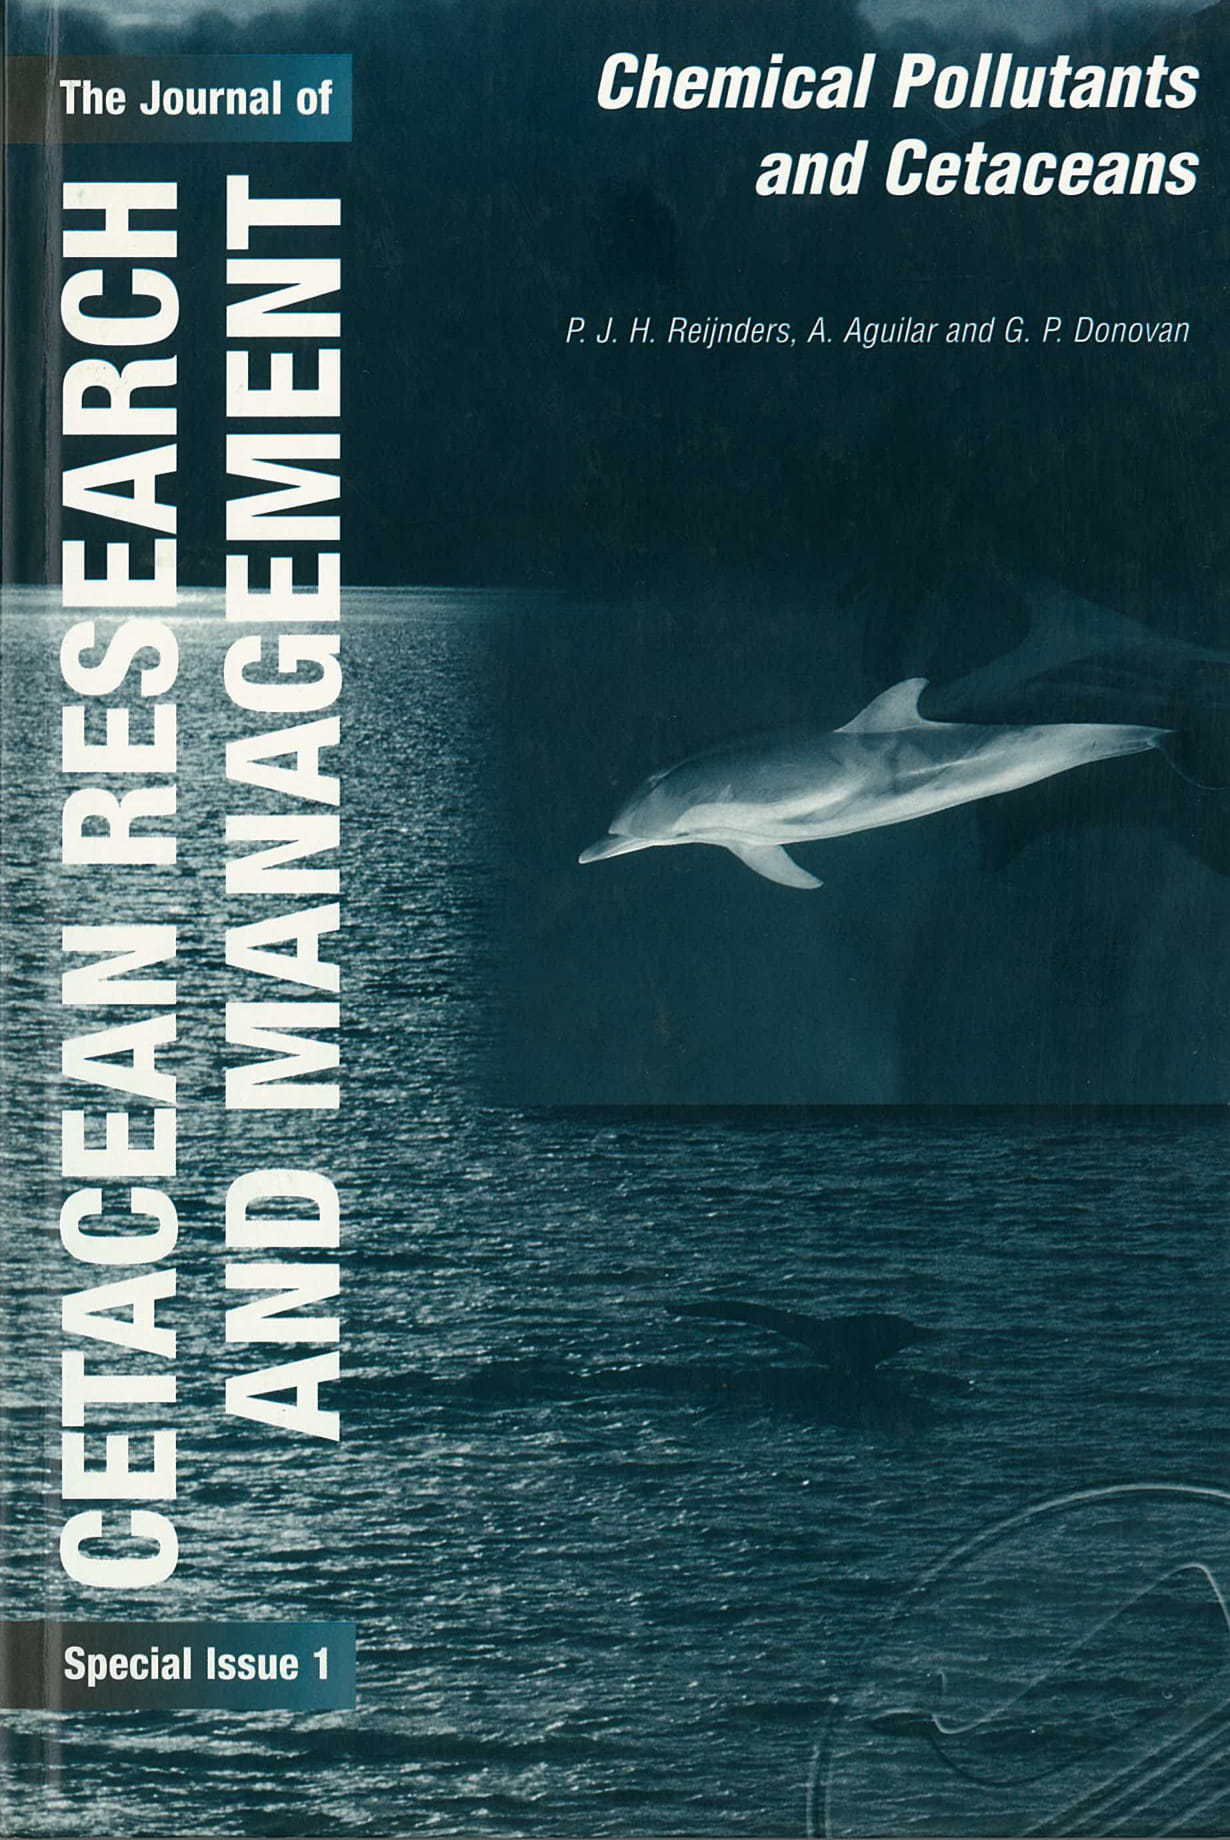 Journal of Cetacean Research and Management (Special Issue 1)